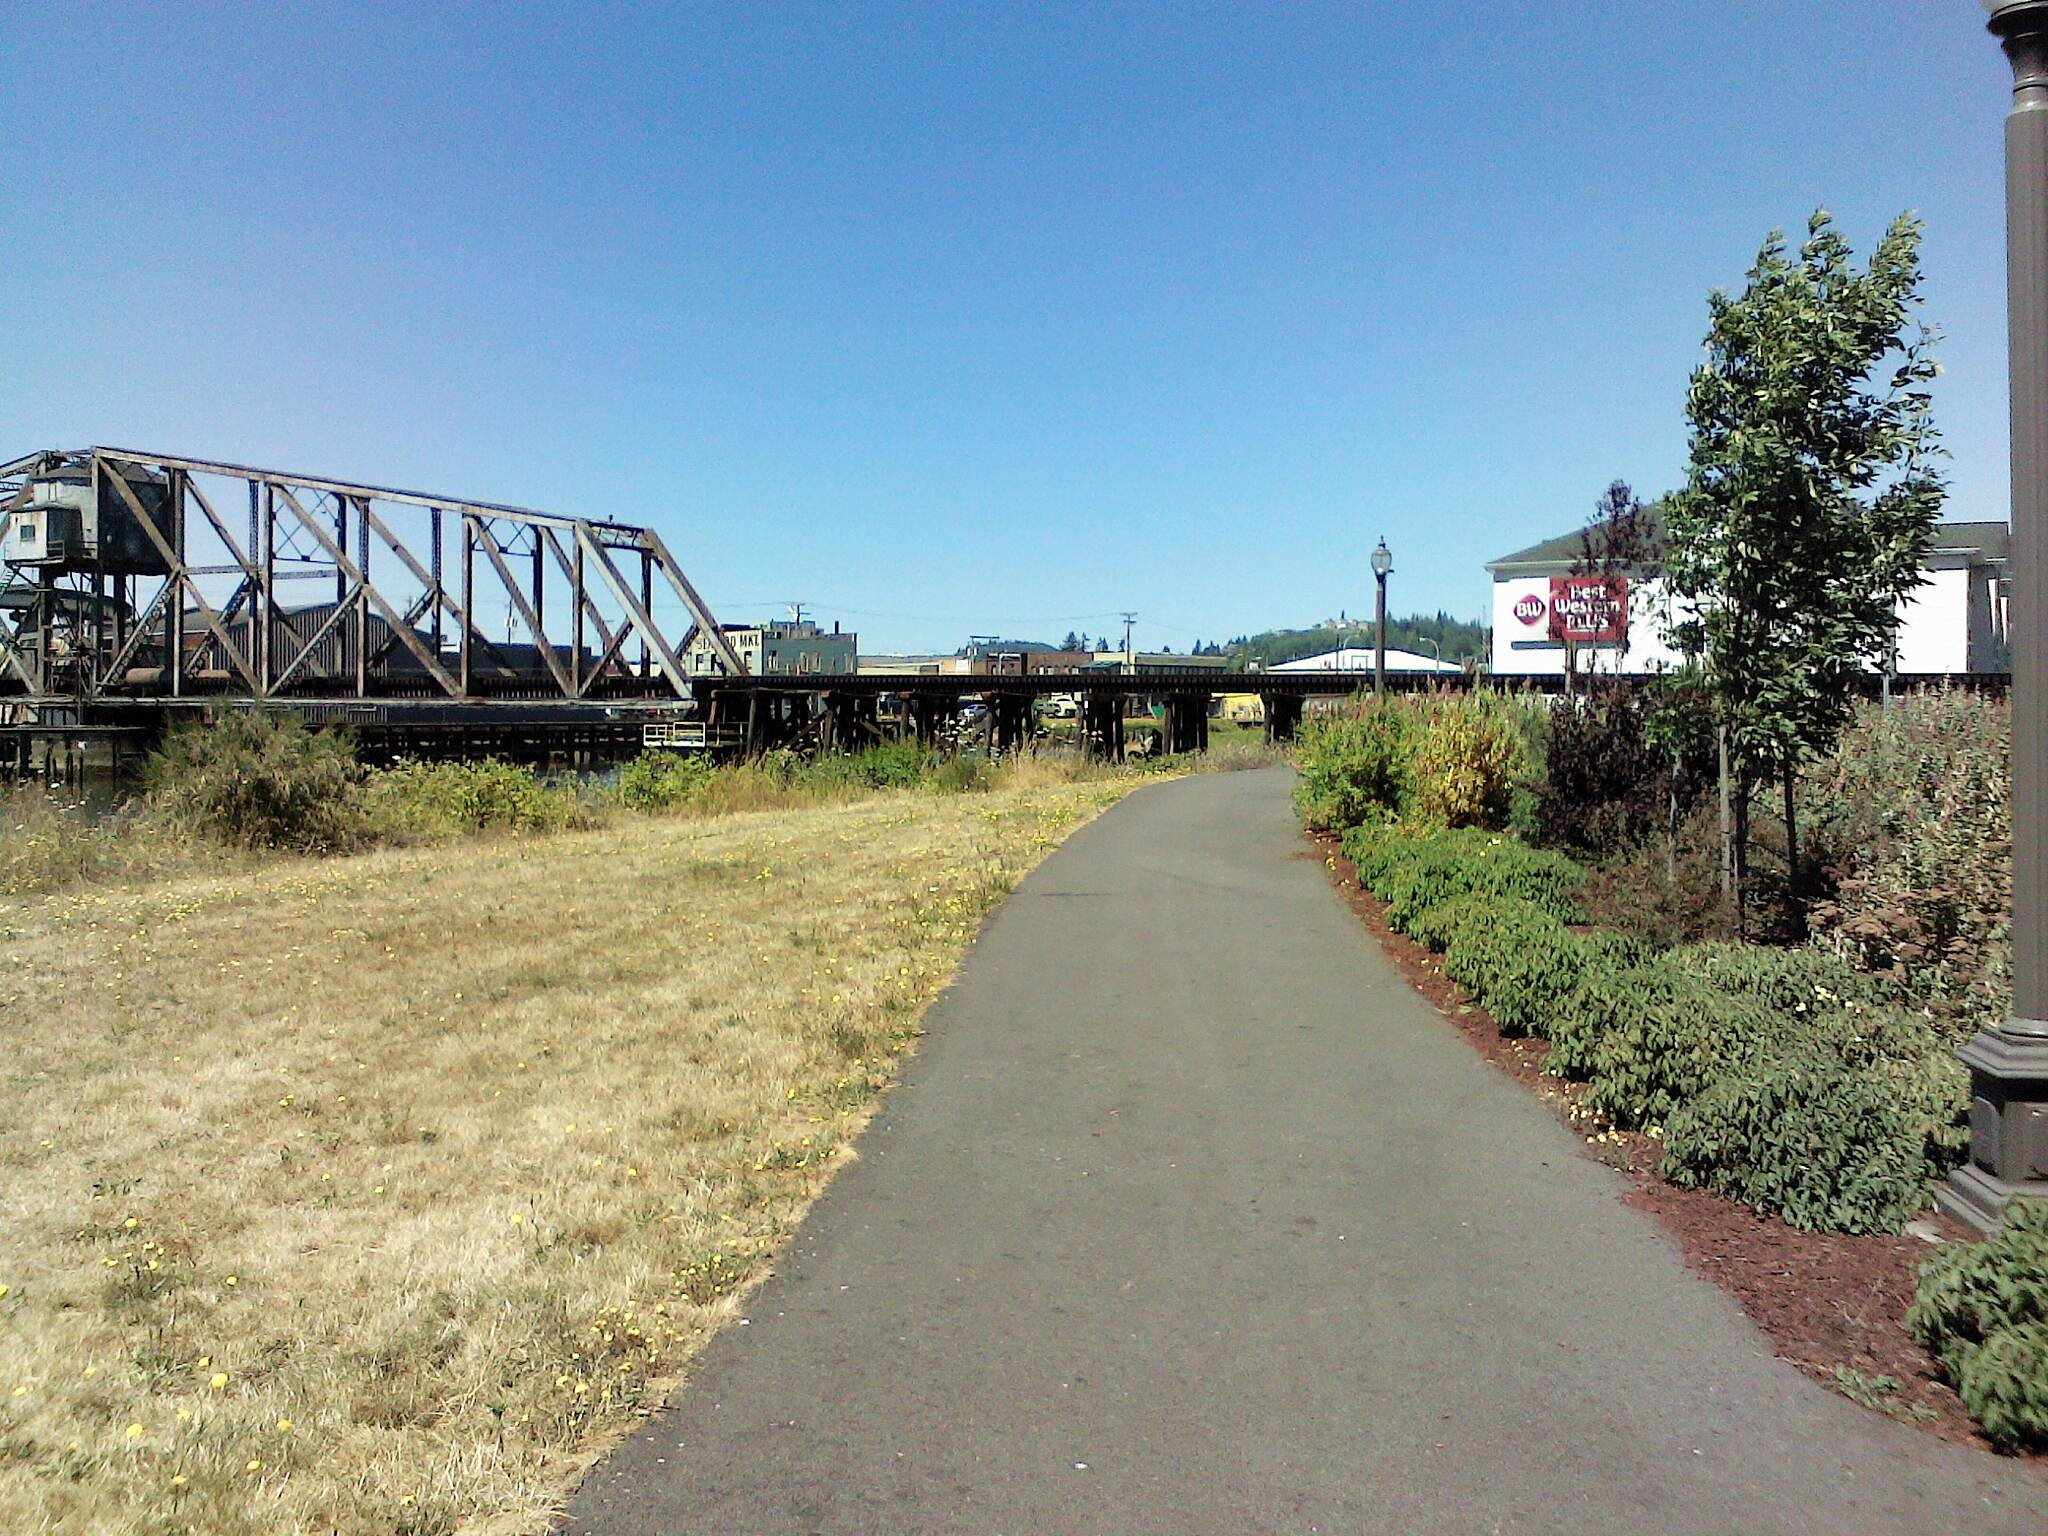 East Aberdeen Waterfront Walkway Trail's start by Walmart parking lot looking north Picturesque setting on a rare clear, warm and sunny July day in Aberdeen Washington. They get over 80 inches of rainfall a year here. Not today though!